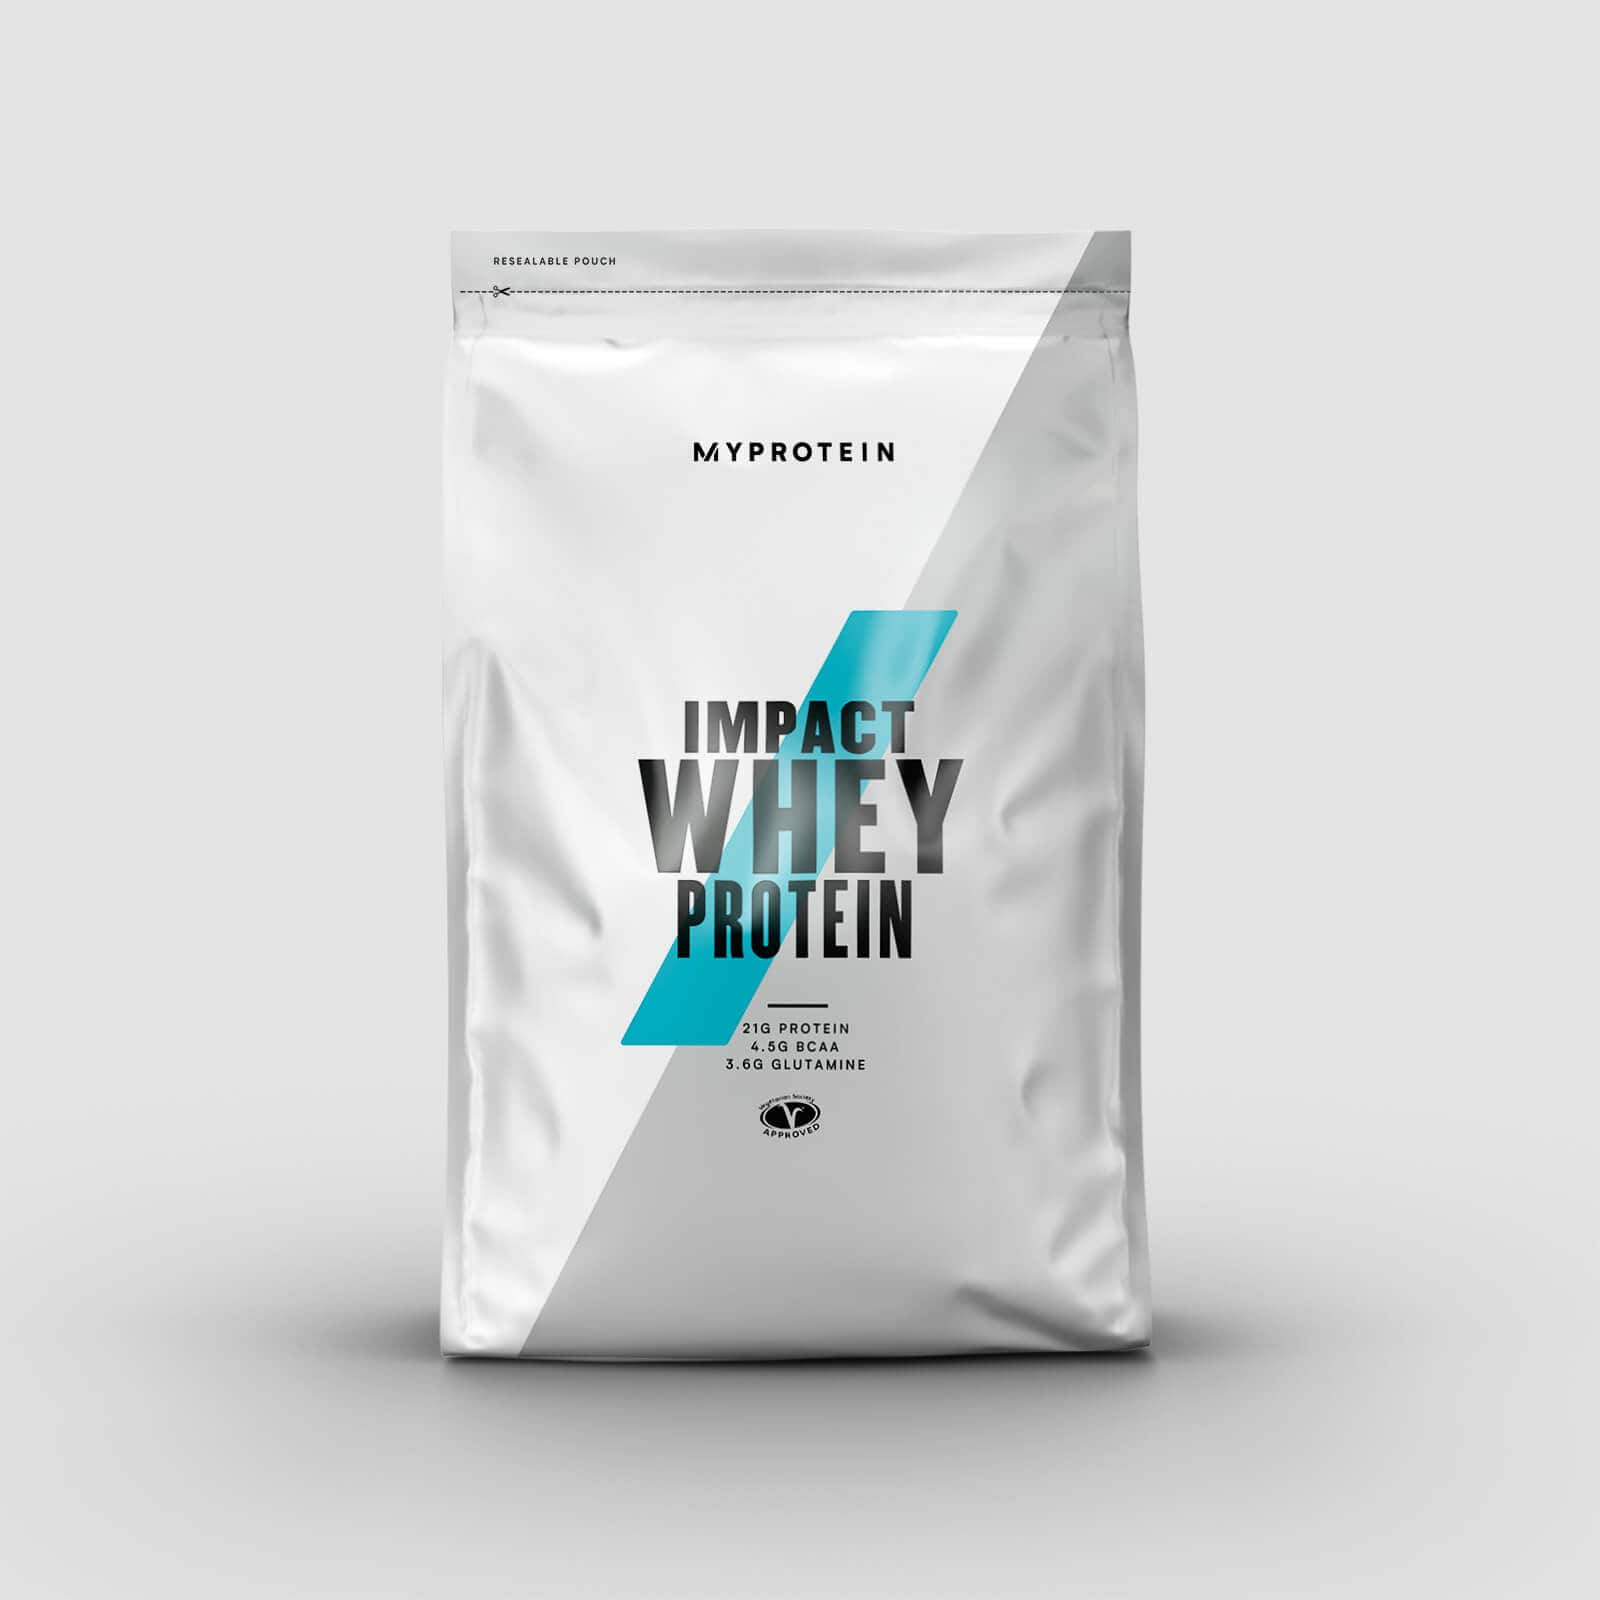 Whey Protein Powder $15 for 2.2 lbs, MyProtein 50% off Everything with Code LABOR - FS